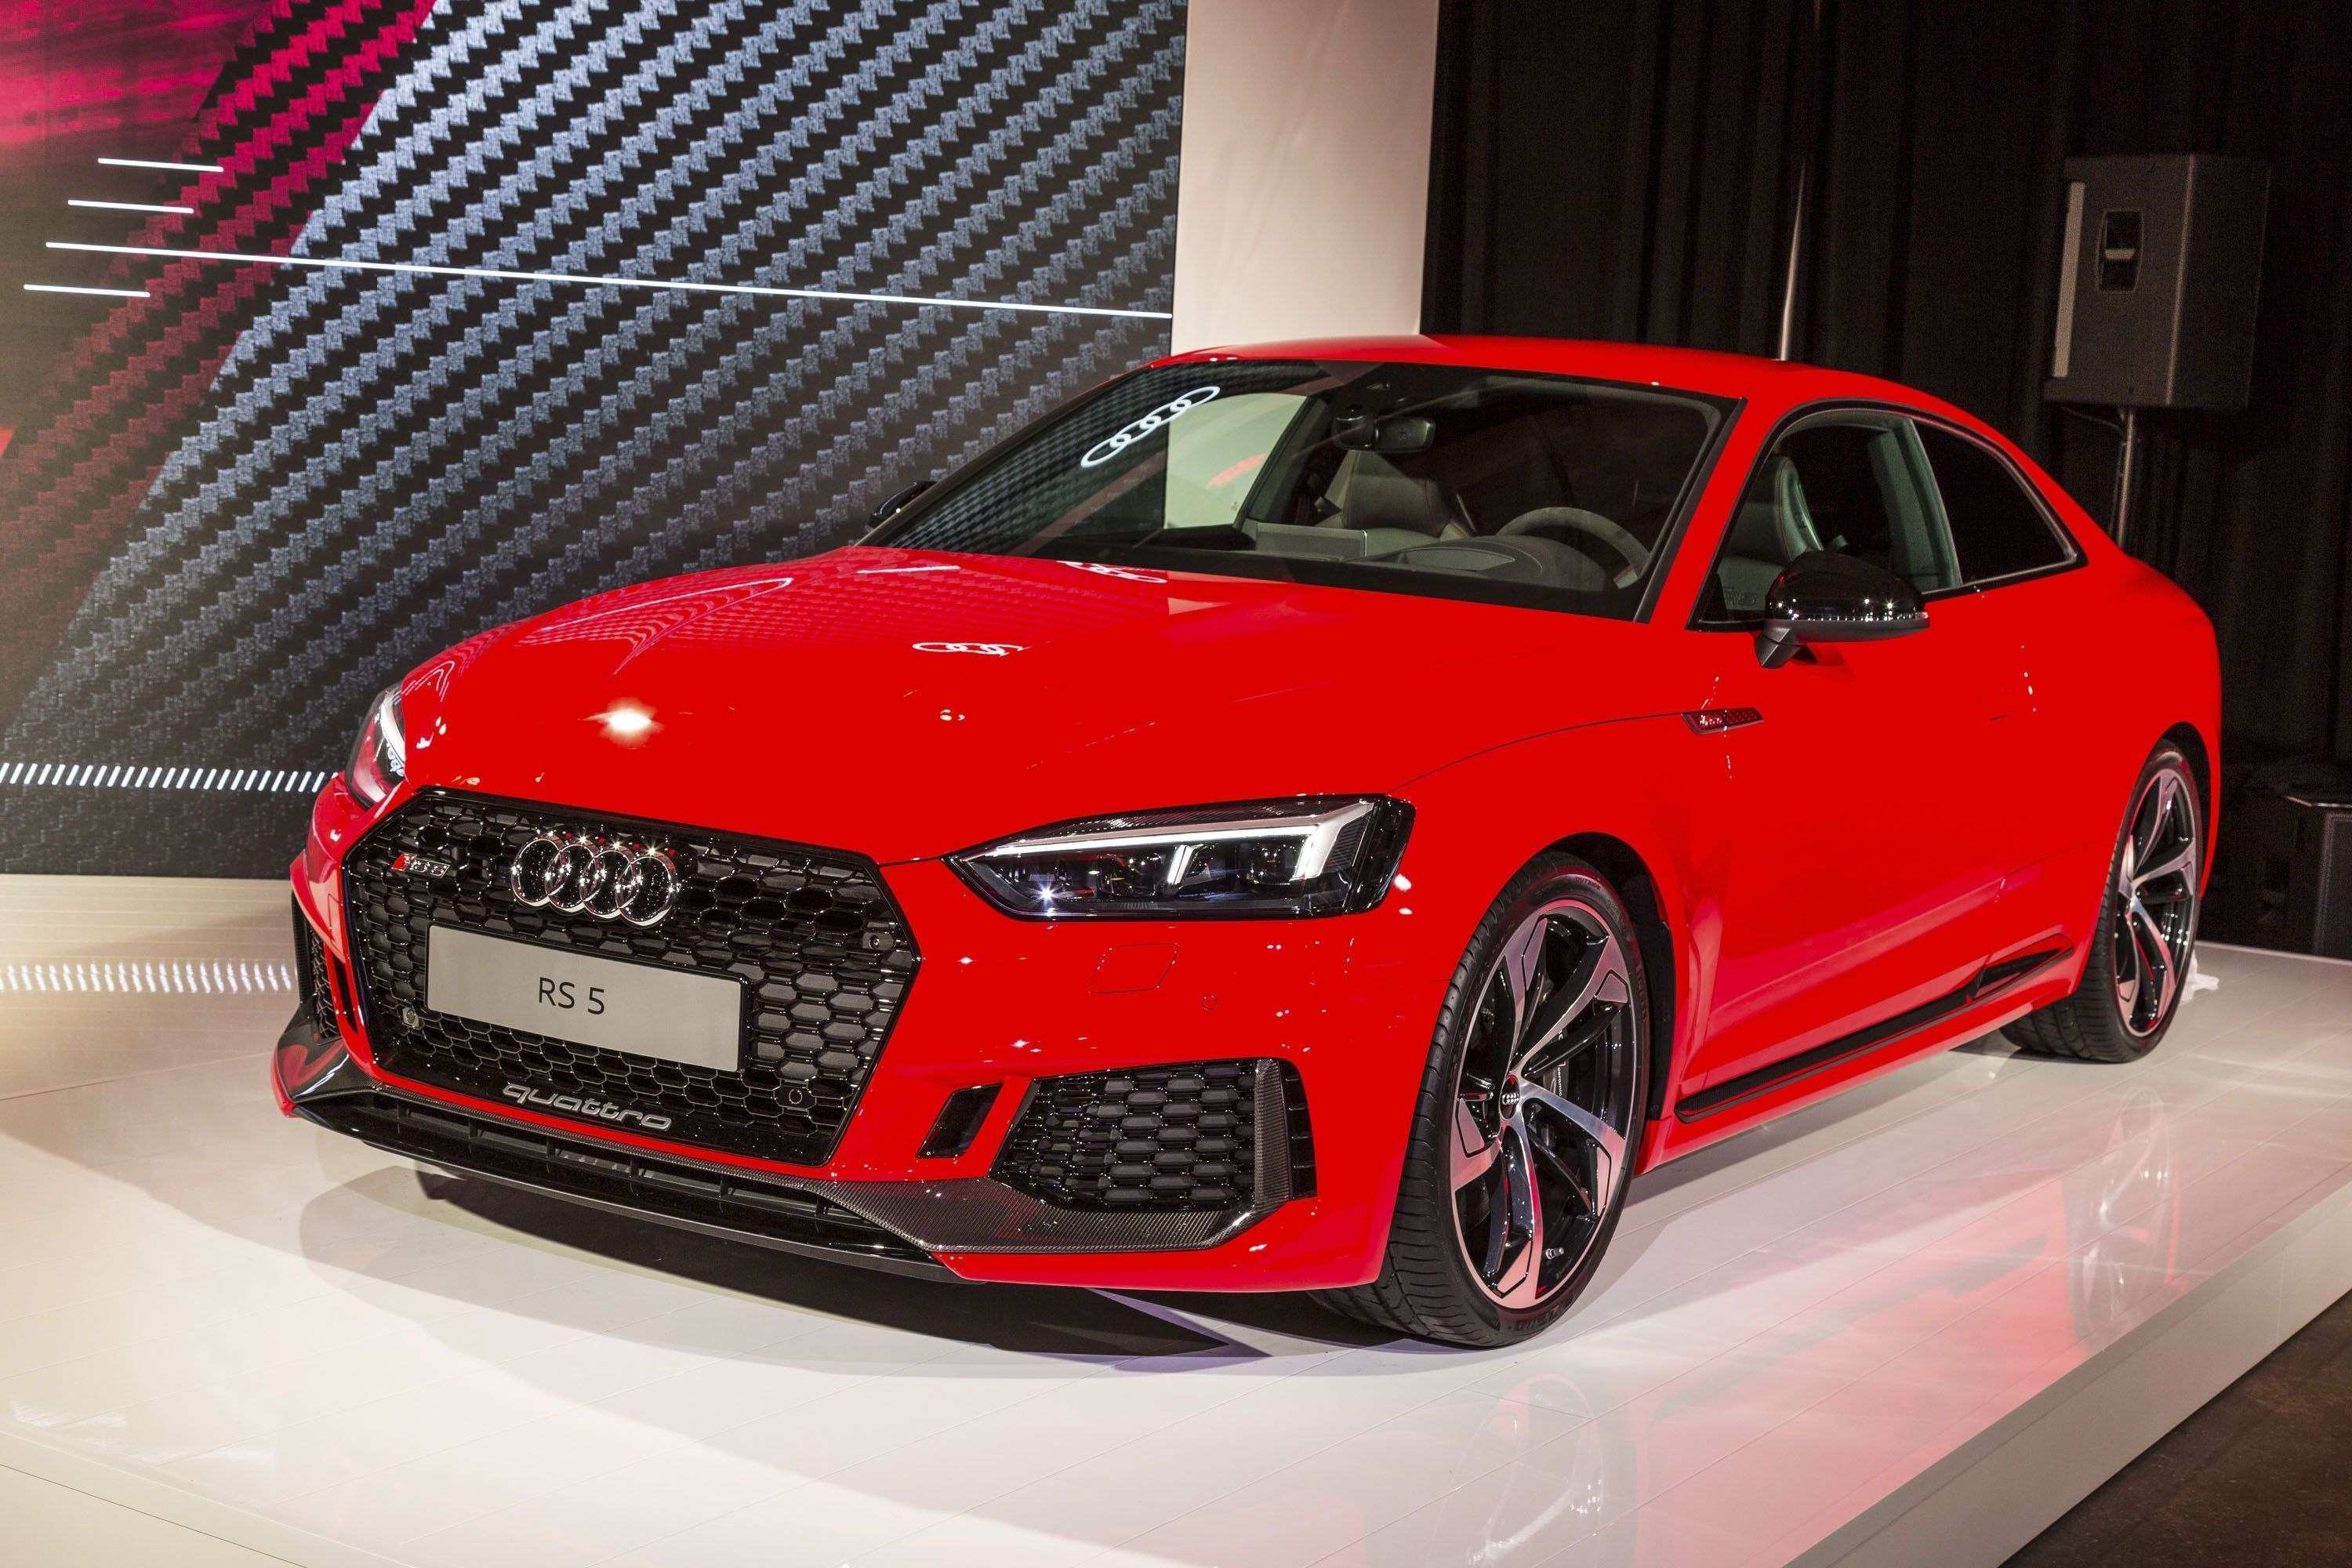 62 New 2020 Audi Rs5 Tdi Picture by 2020 Audi Rs5 Tdi